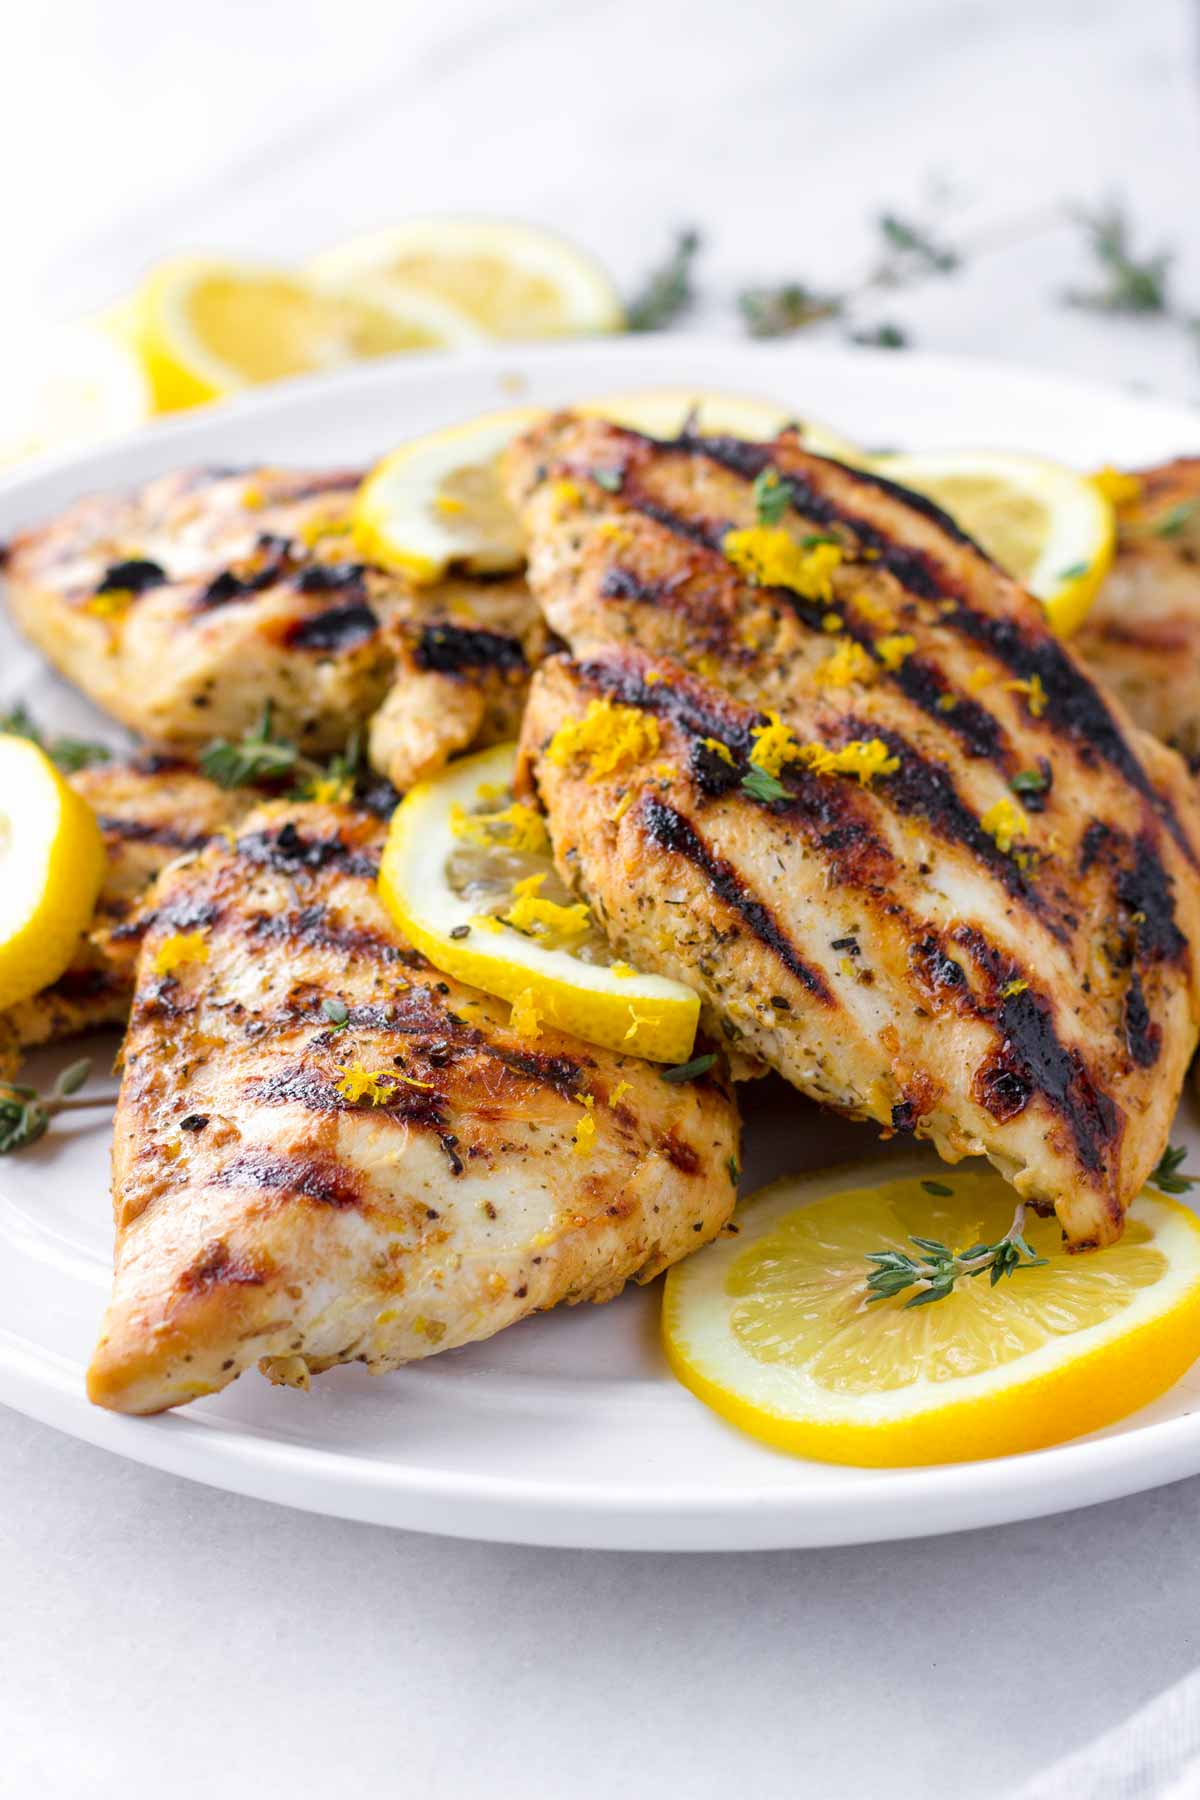 several cooked chicken breasts on a plate with herb and citrus garnish